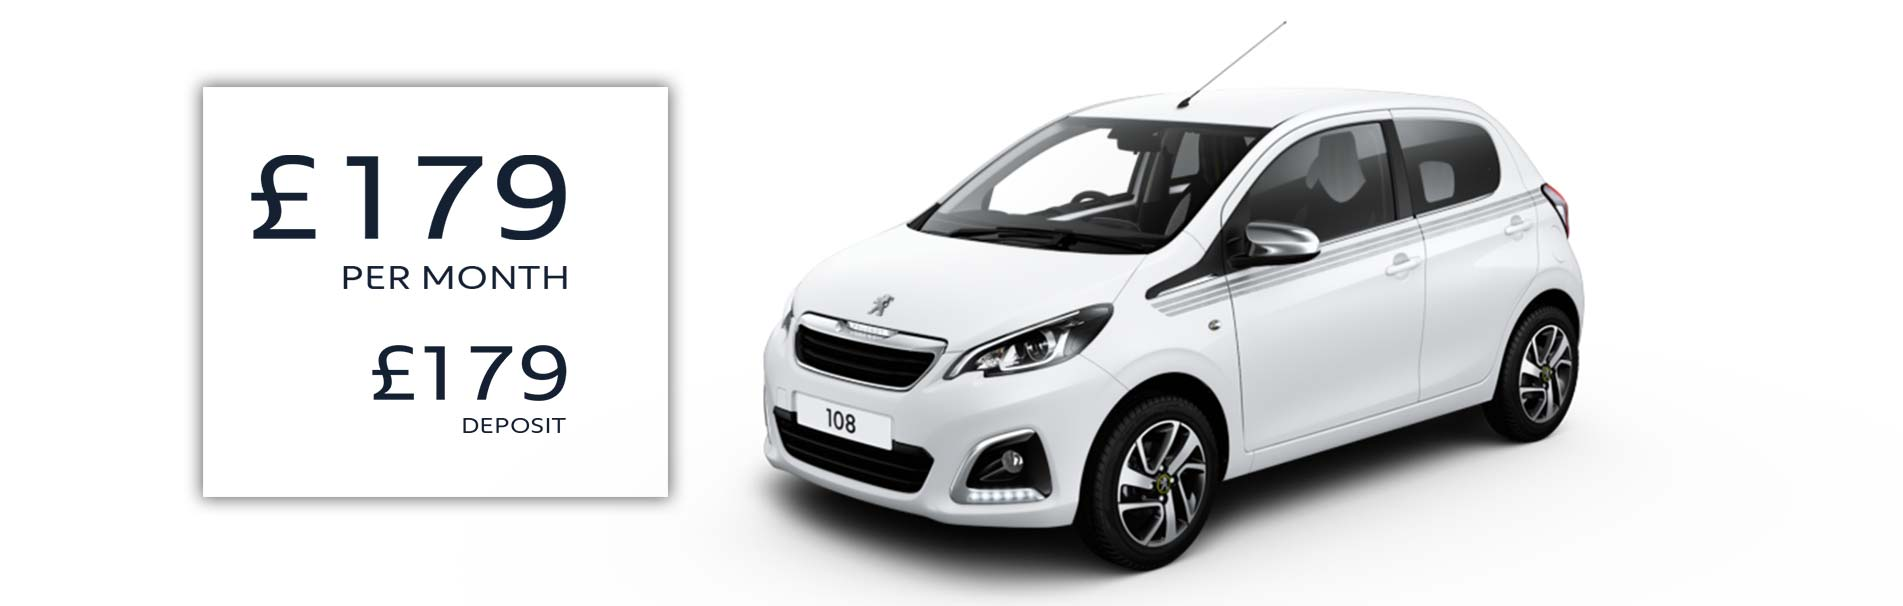 new-peugeot-108-collection-march-specials-sli